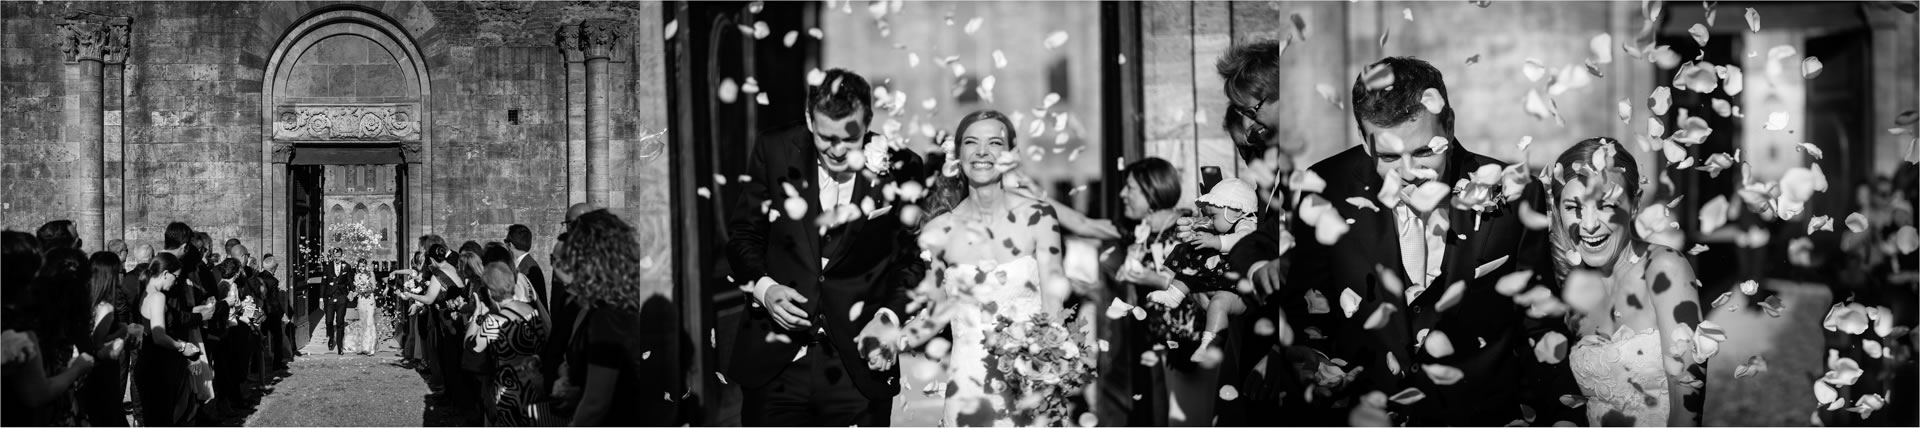 - 28 :: Wedding at Borgo Santo Pietro // San Galgano // WPPI 2018 // You look like a movie :: Luxury wedding photography - 27 ::  - 28